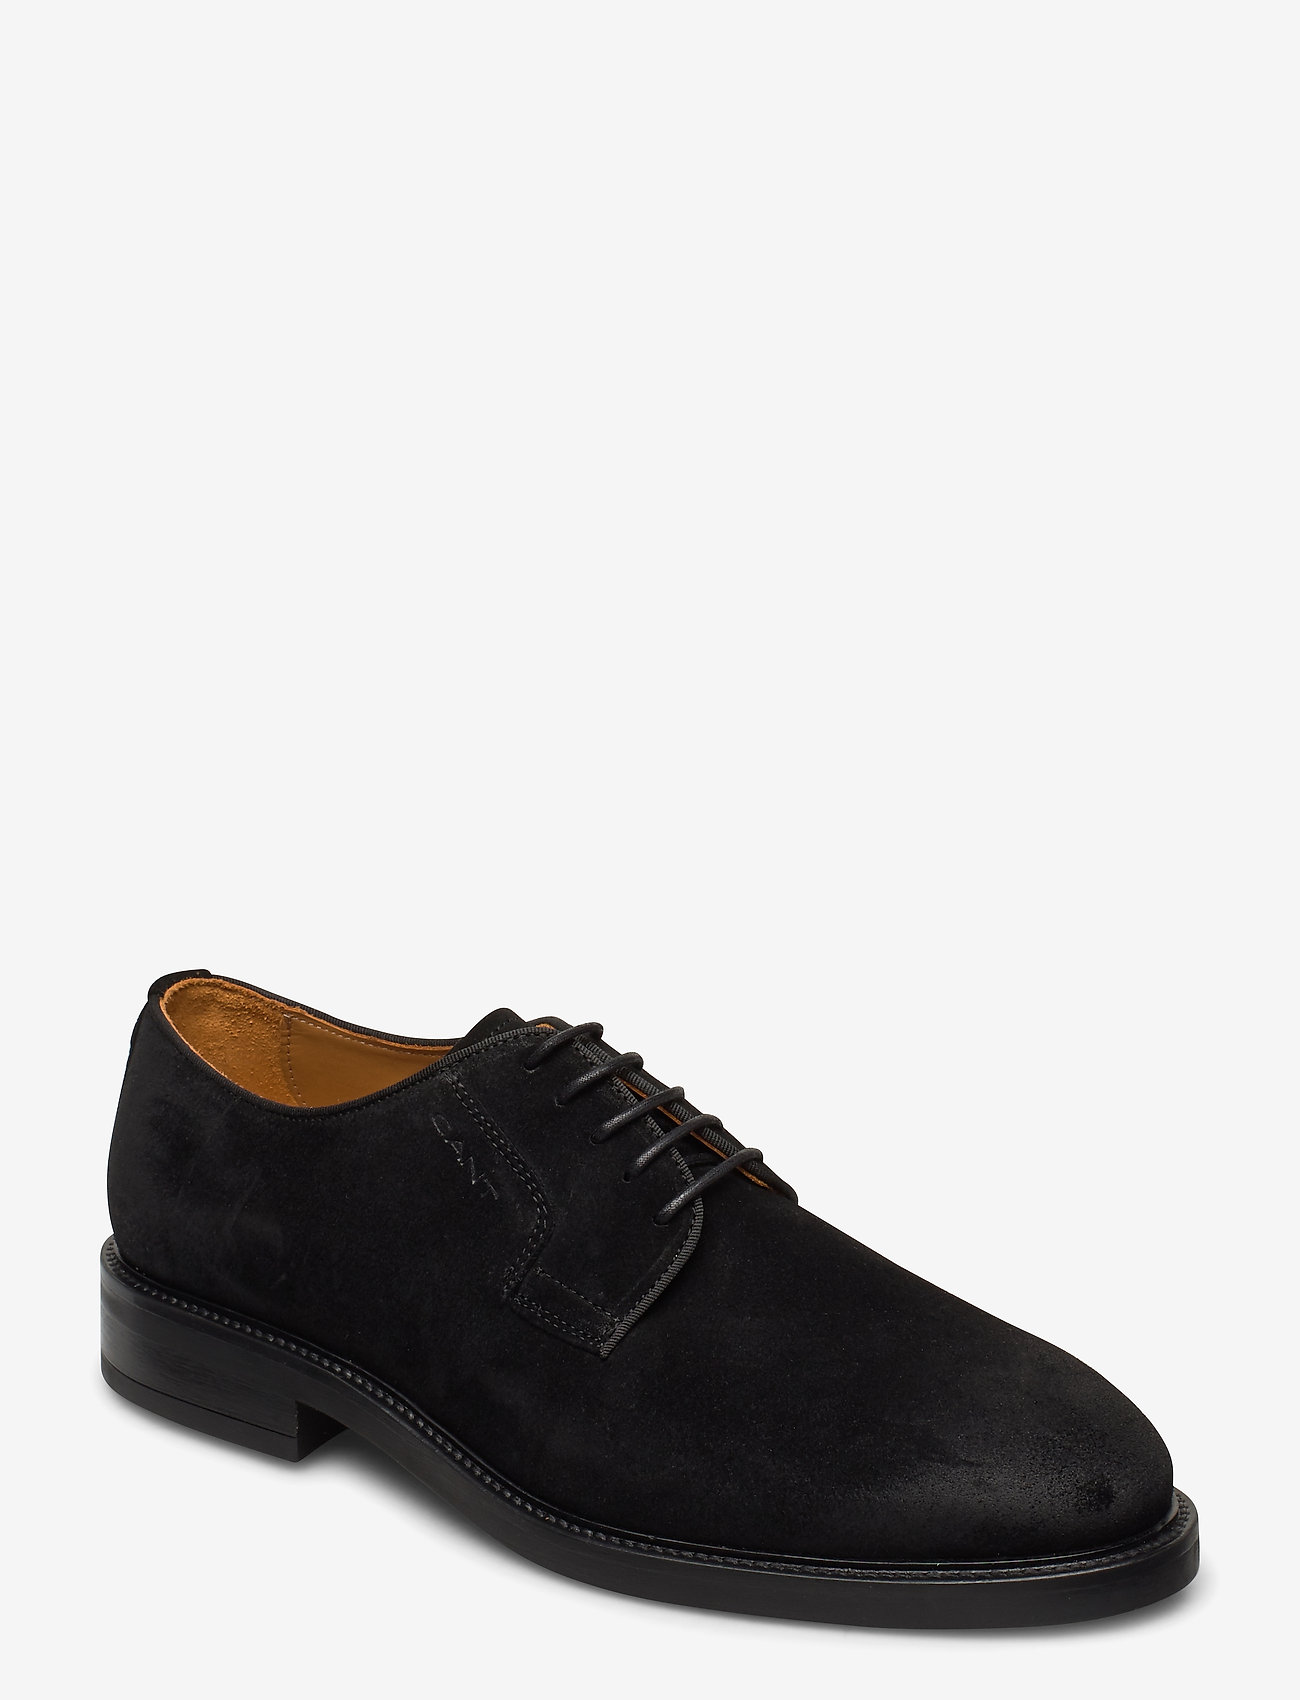 GANT - Flairville Low laceshoes - snøresko - black - 0